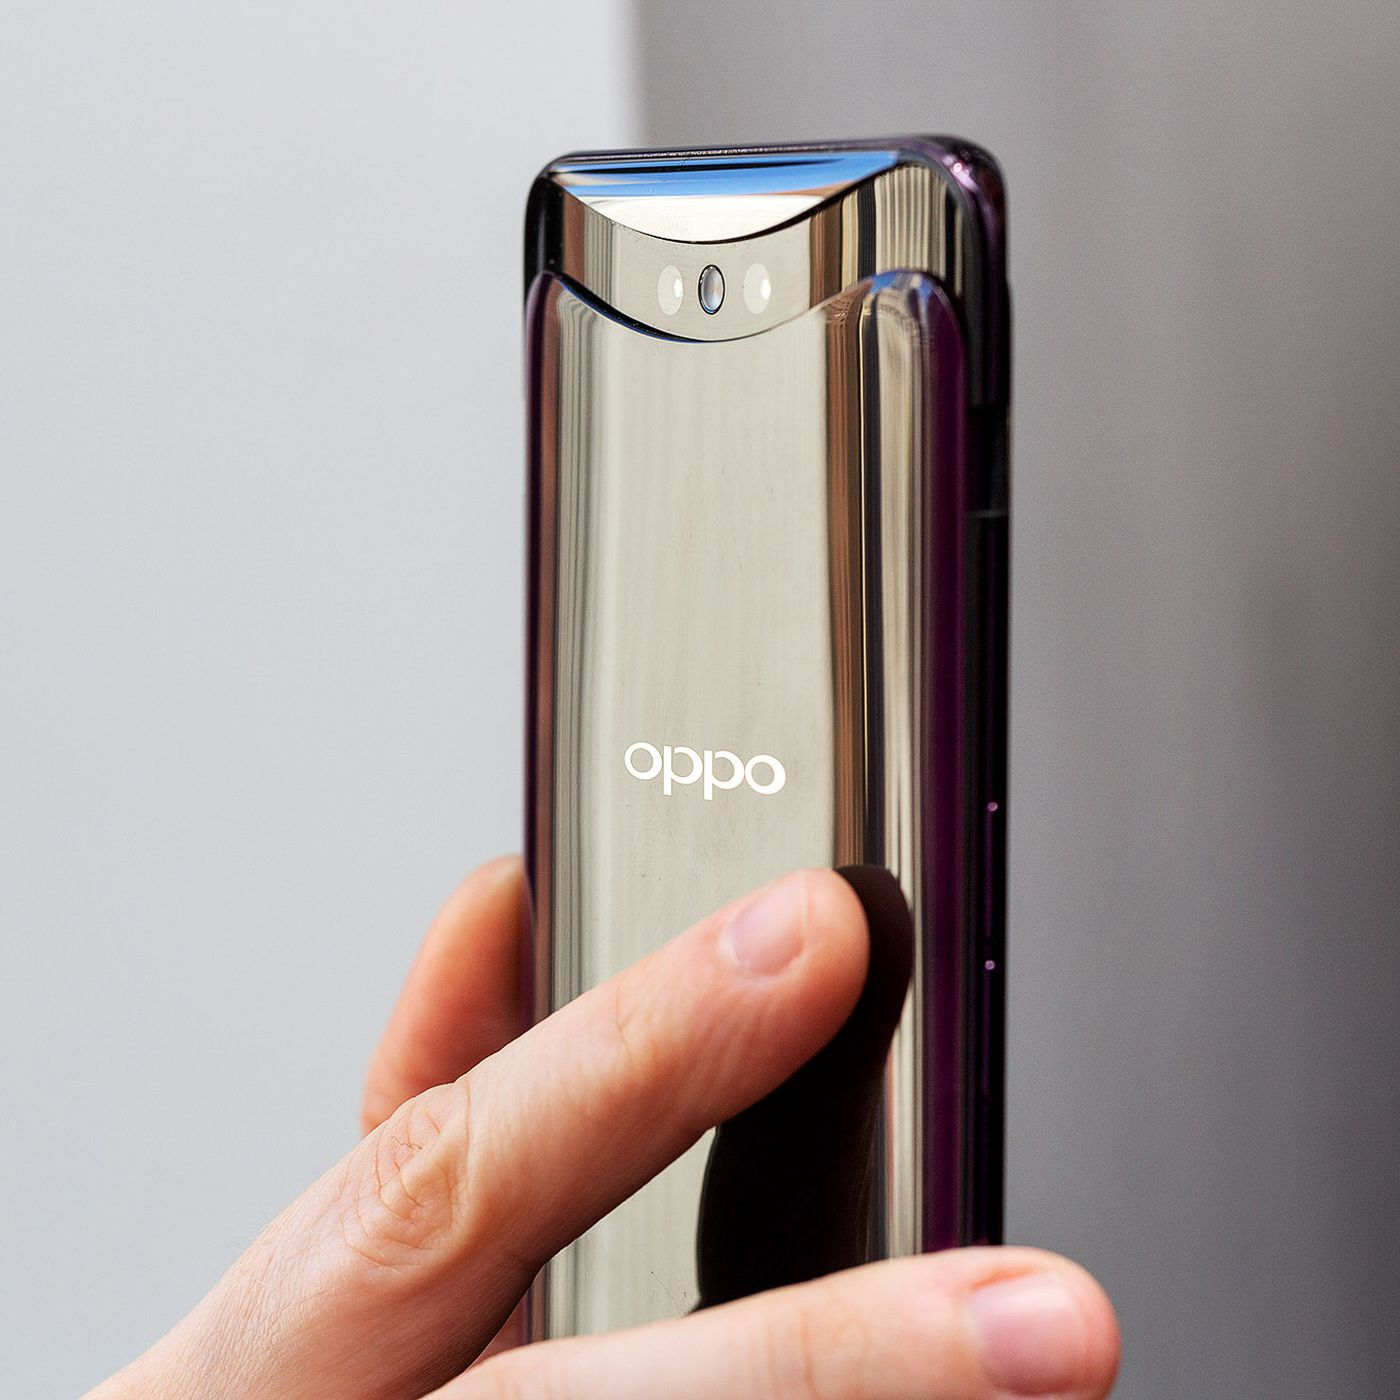 Oppo confirms 10x zoom camera for smartphones - The Verge